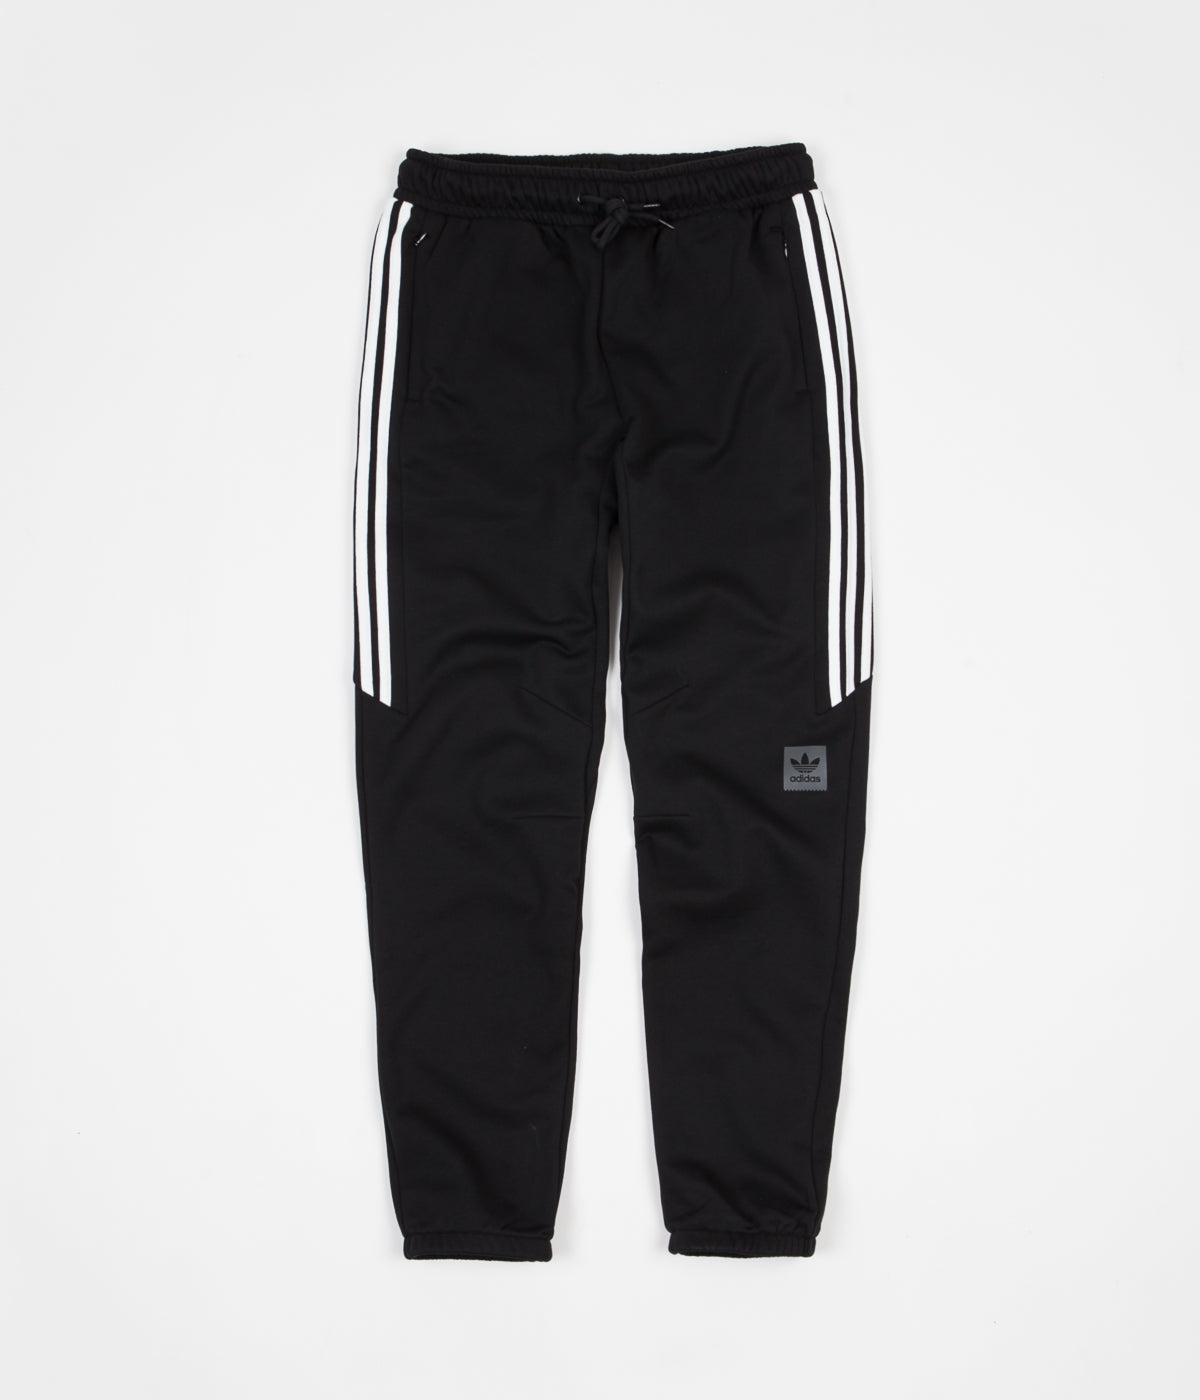 new arrival available new collection Adidas Tech Sweatpants - Black / White | Flatspot